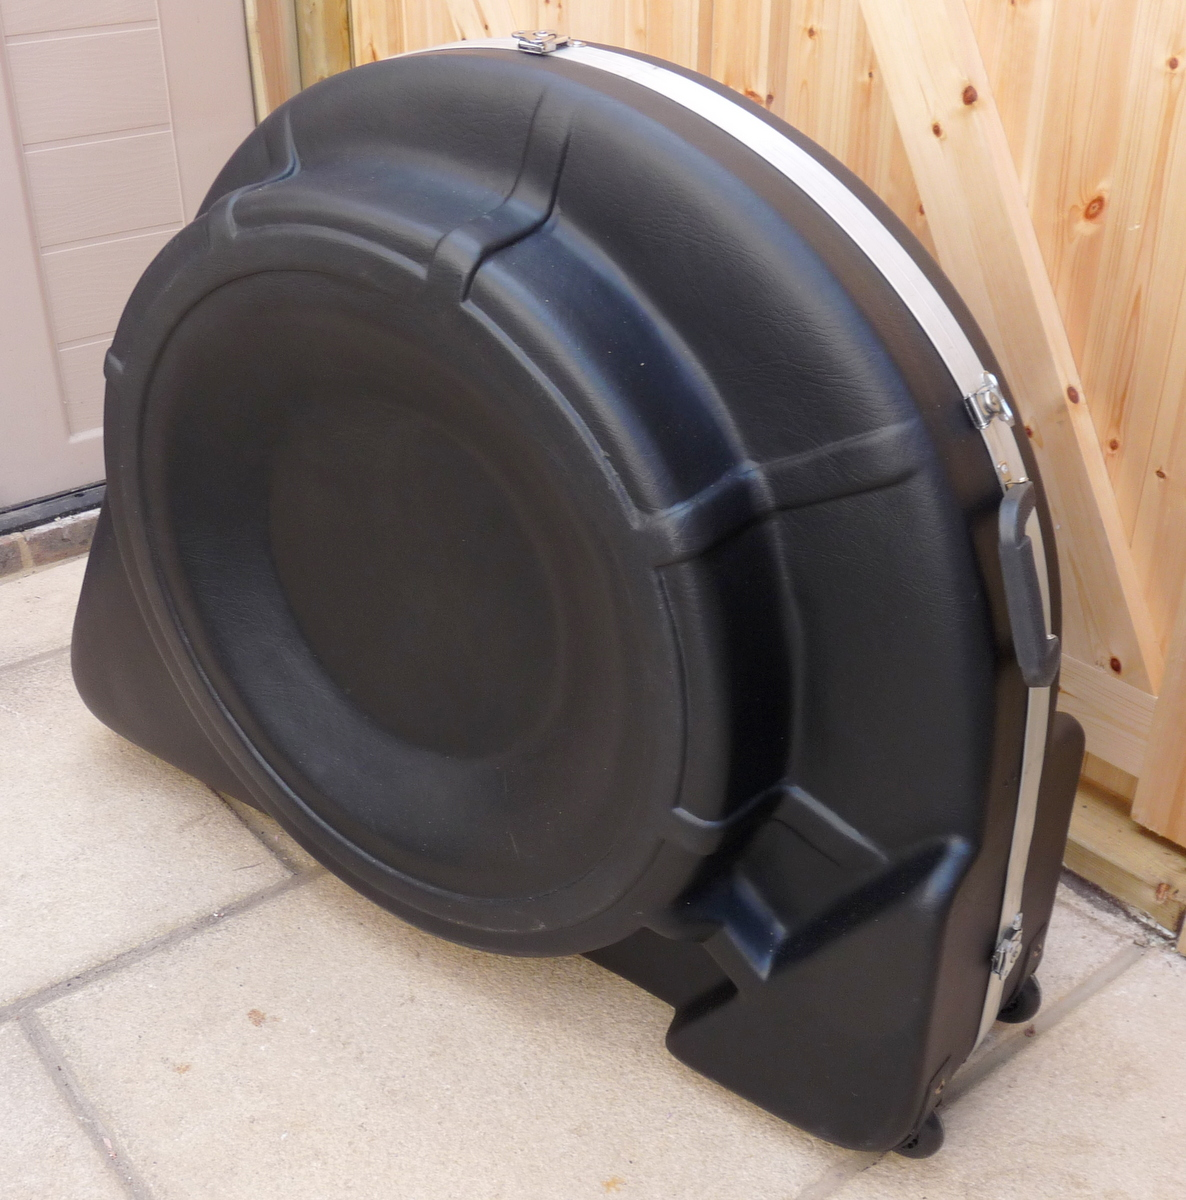 Sousaphone case picture free library Sousaphone case picture free library